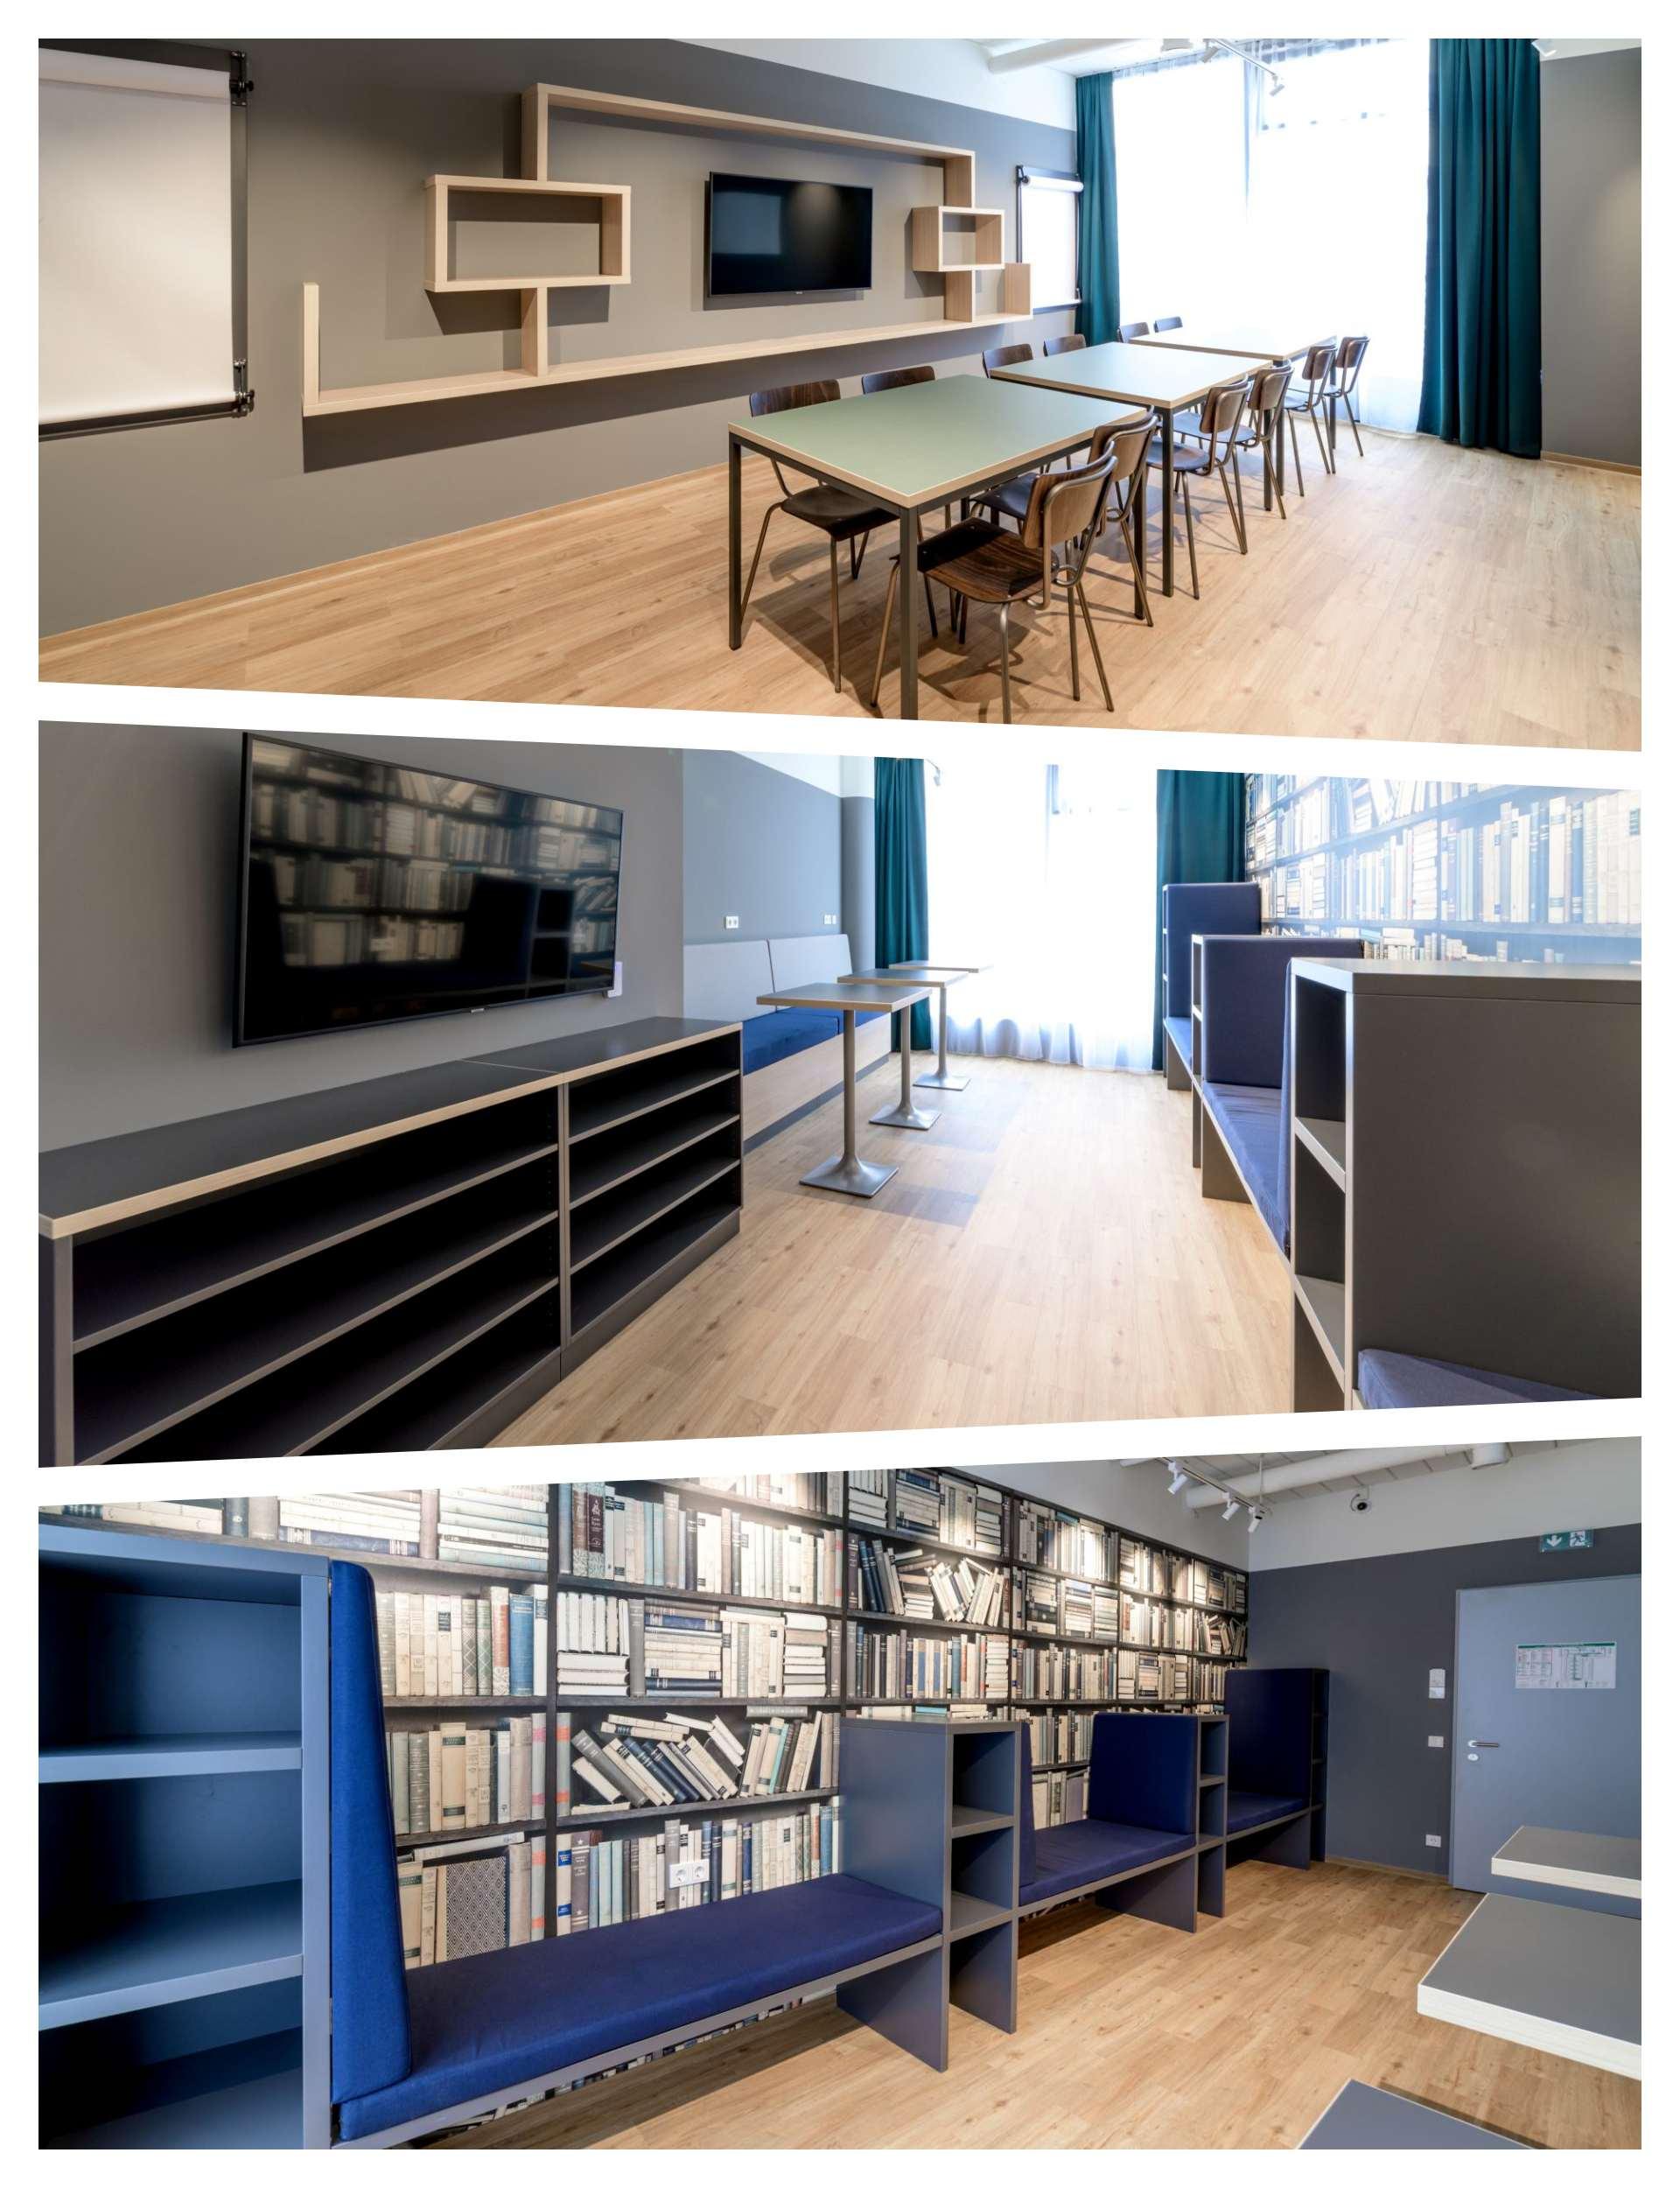 Study Rooms at THE FIZZ Vienna Main Station Student Residence